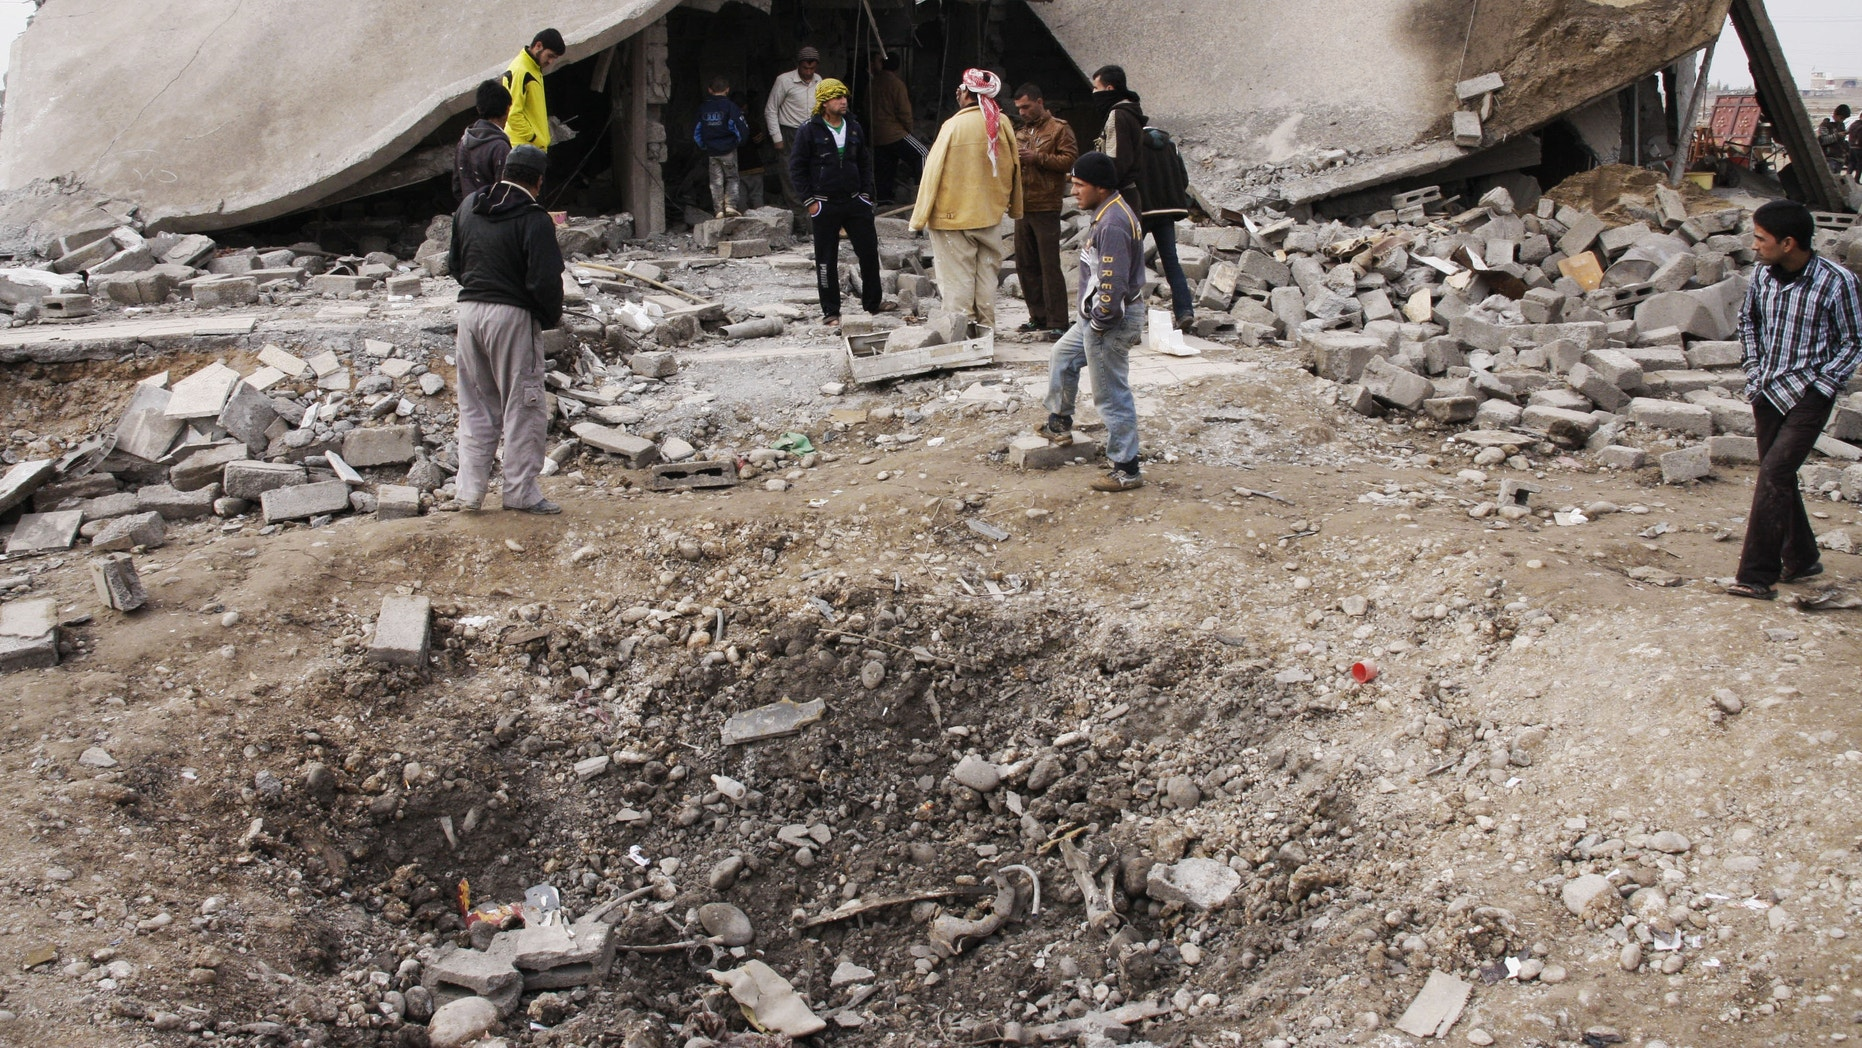 Dec. 17, 2012 - People inspect scene of a car bomb attack in al-Mouafaqiyah, a village inhabited by families from the Shabak ethnic group, near the city of Mosul, northwest of Baghdad.